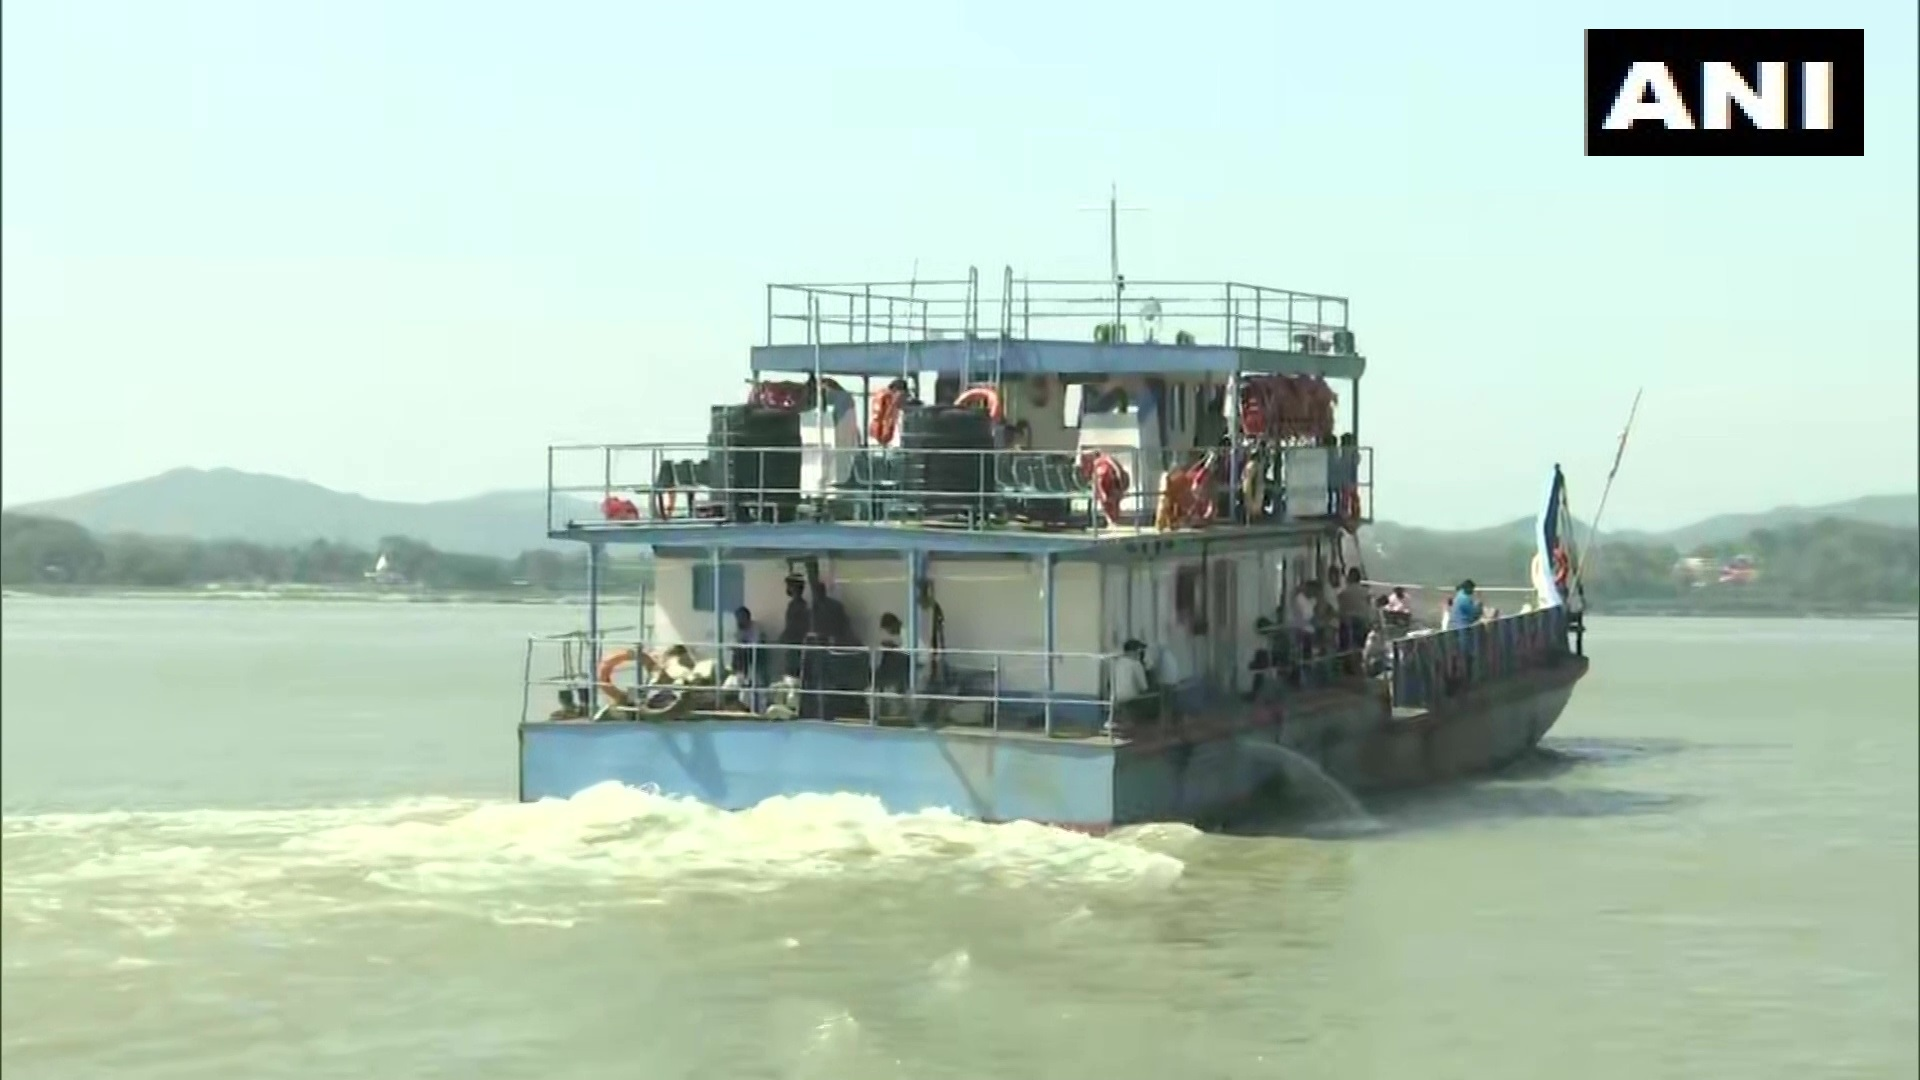 ghy- n ghy ferry service resumes